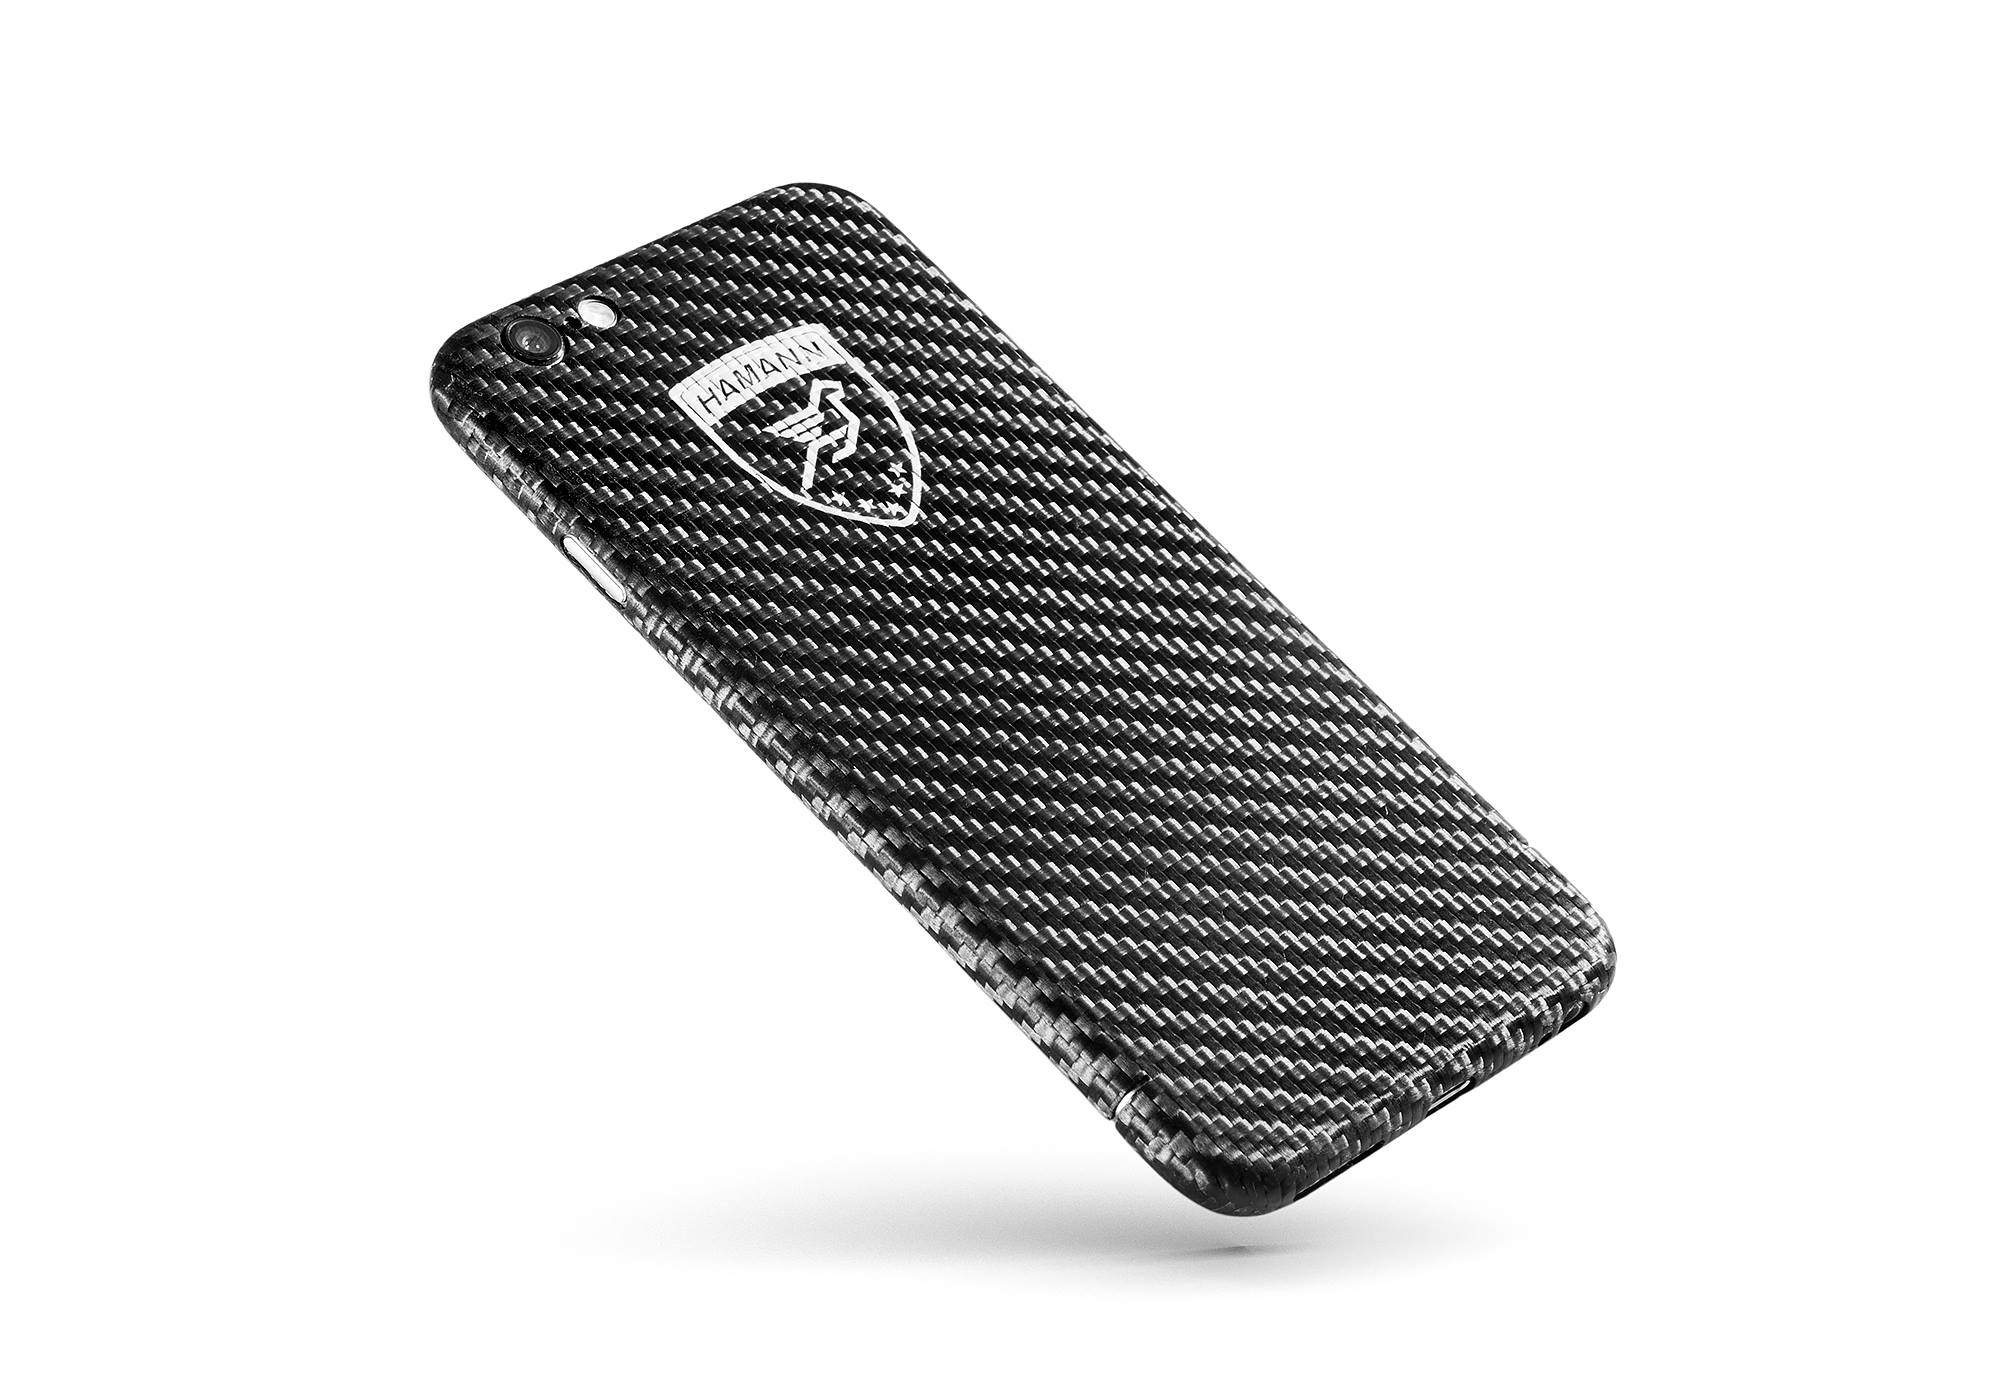 iphone 6 coque porsche